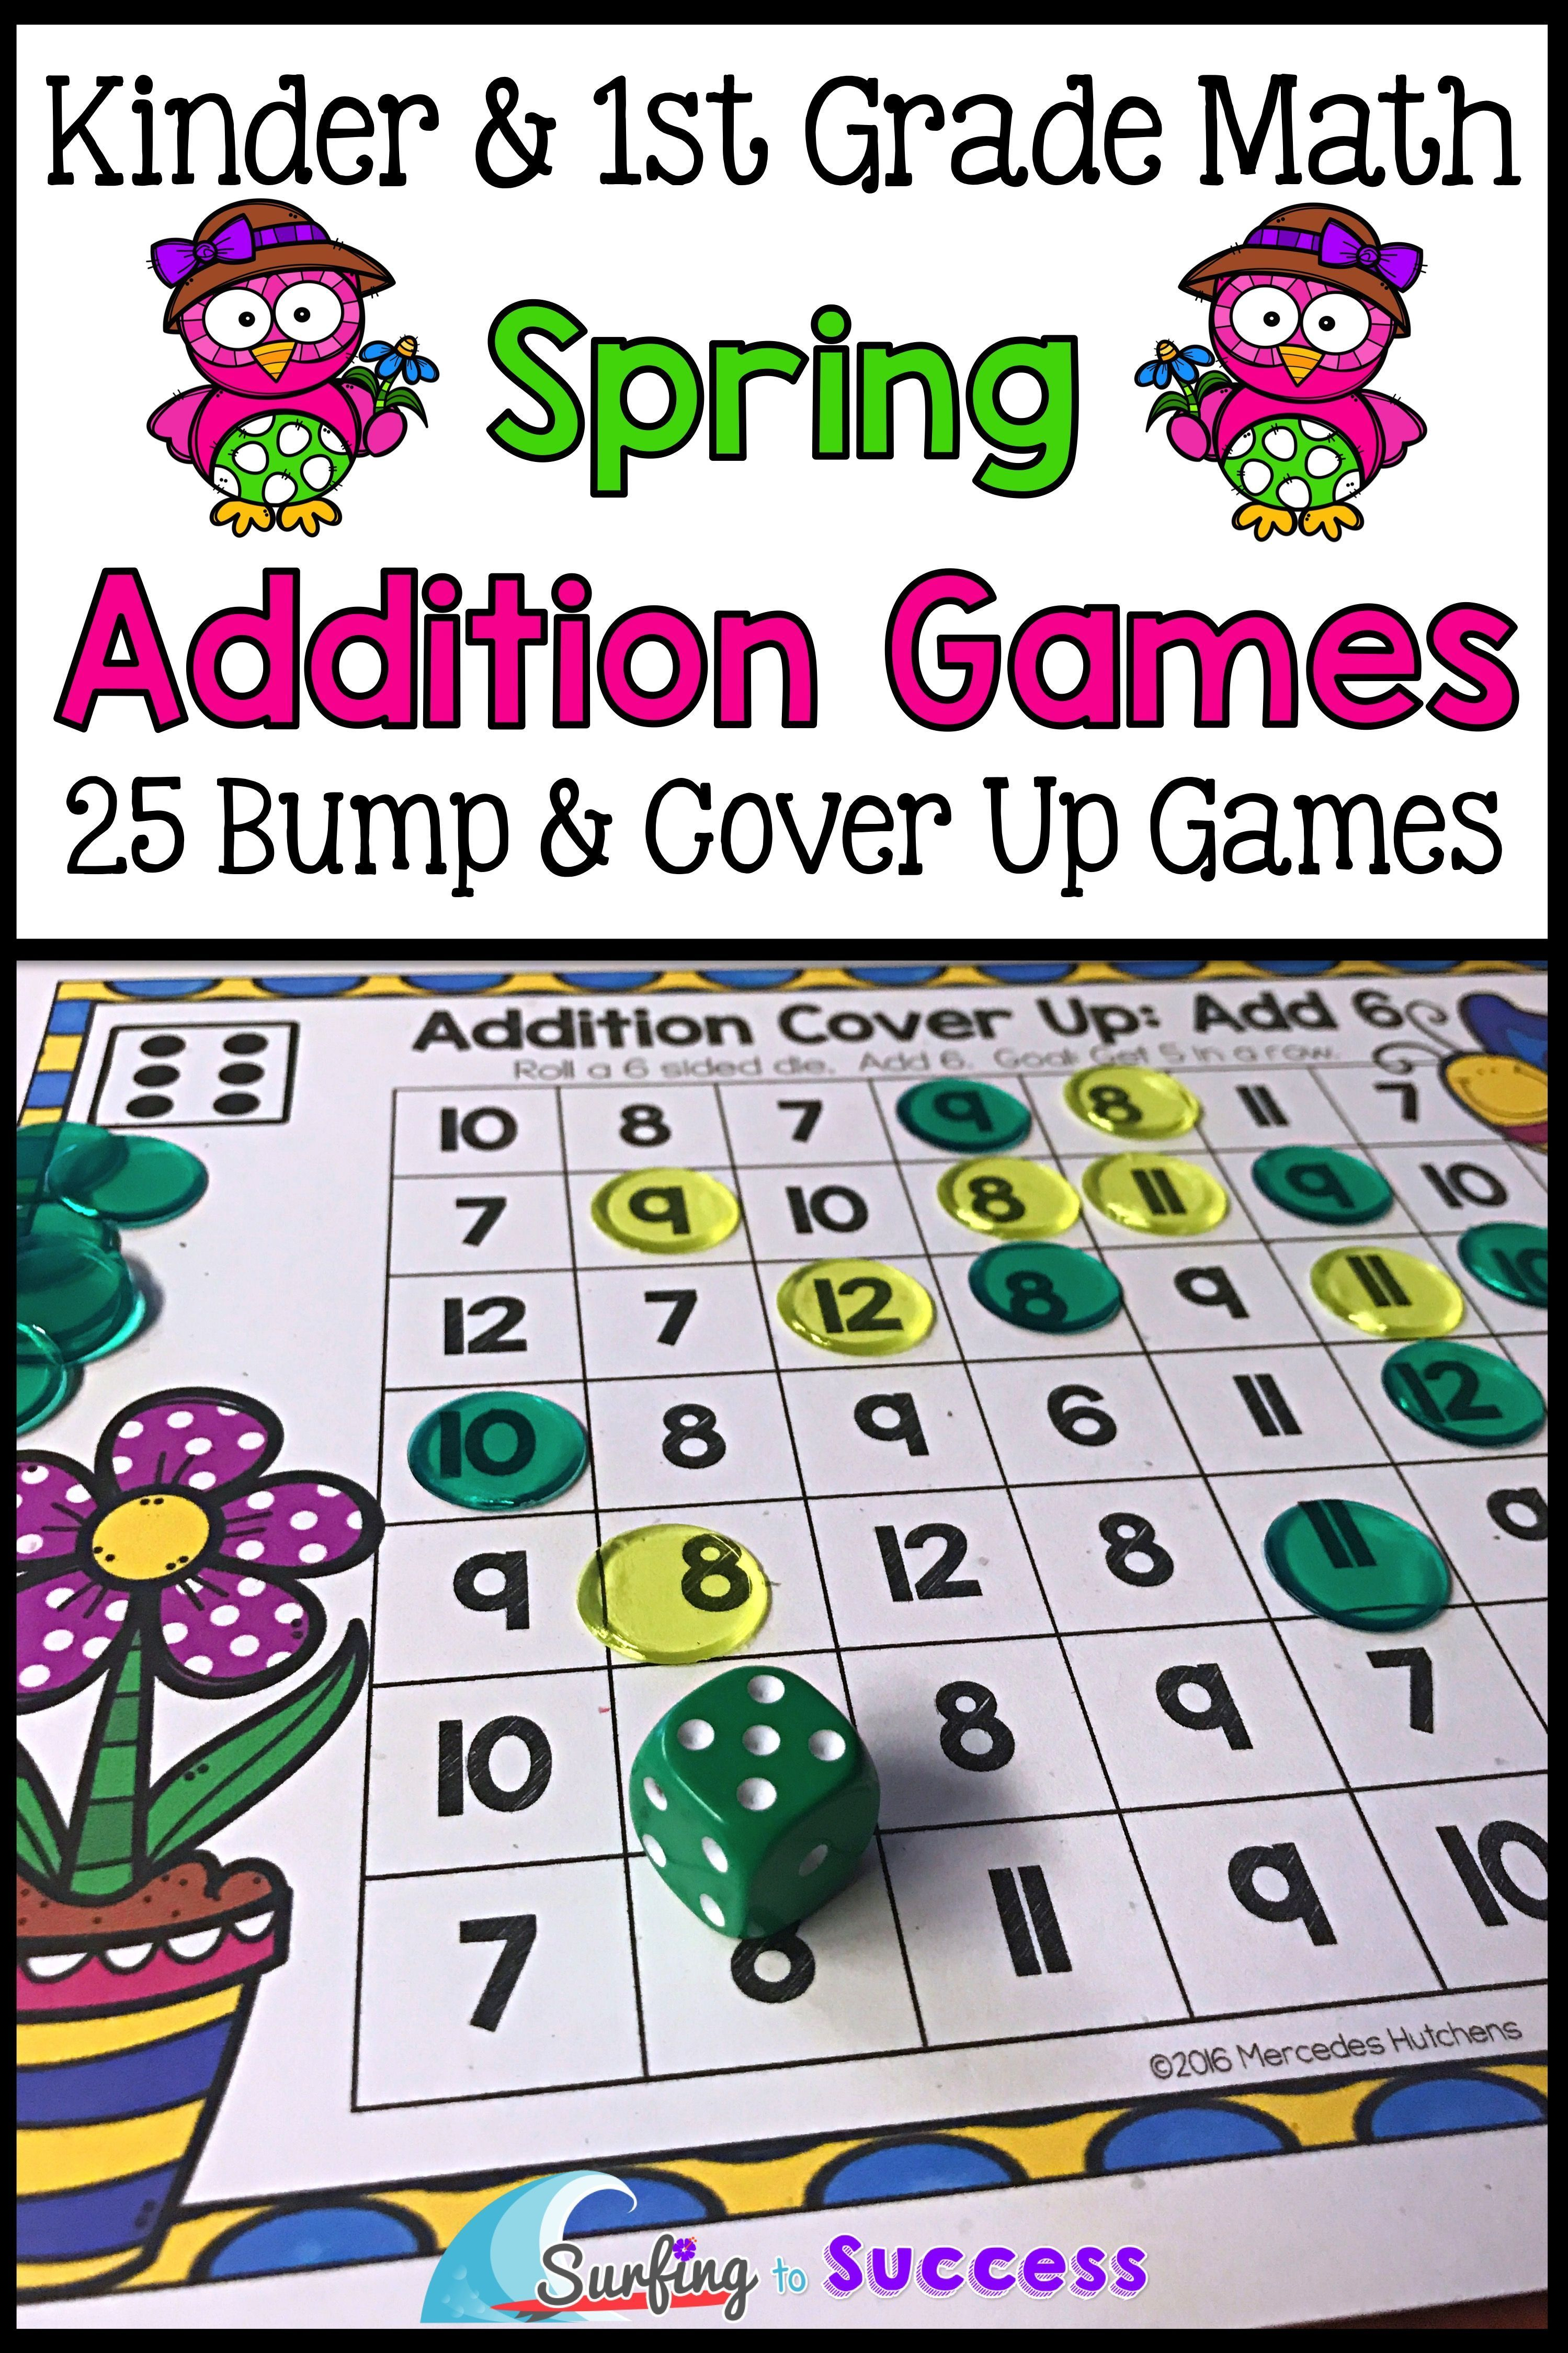 Looking for addition games for your kindergarten, first